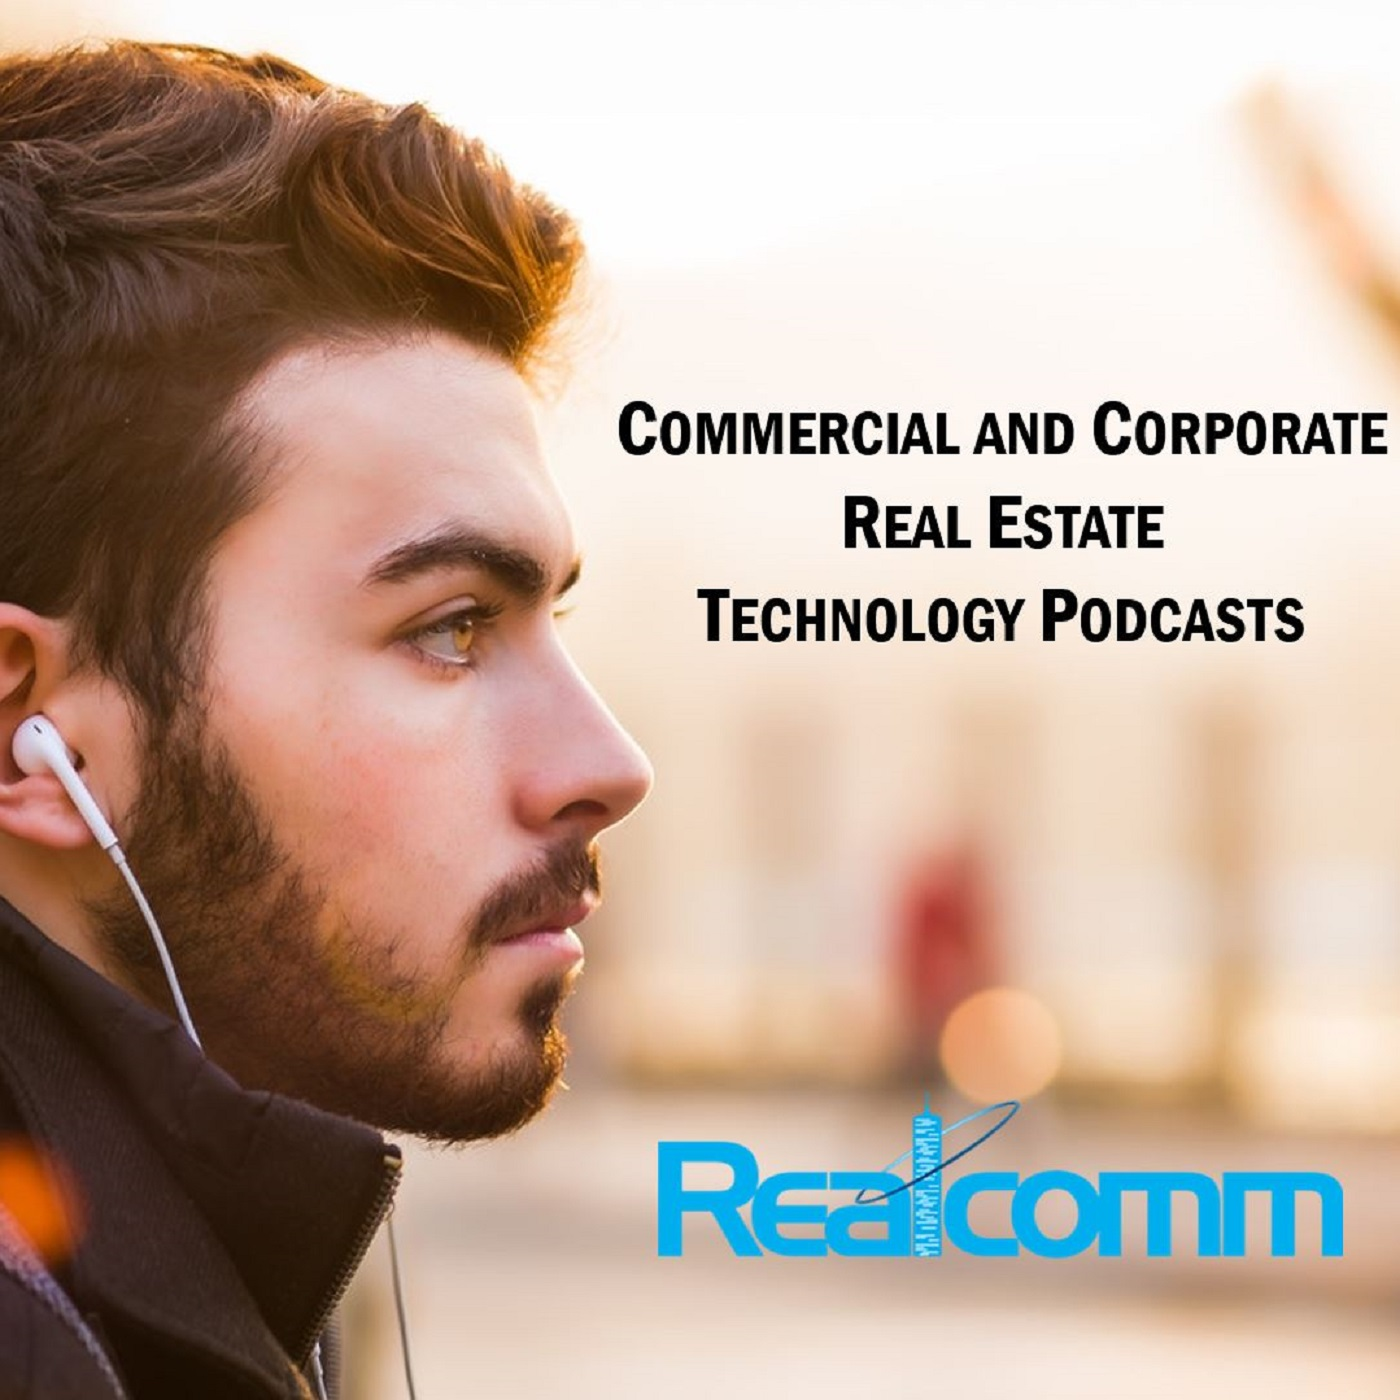 Realcomm - CRE Technology, Automation and Innovation